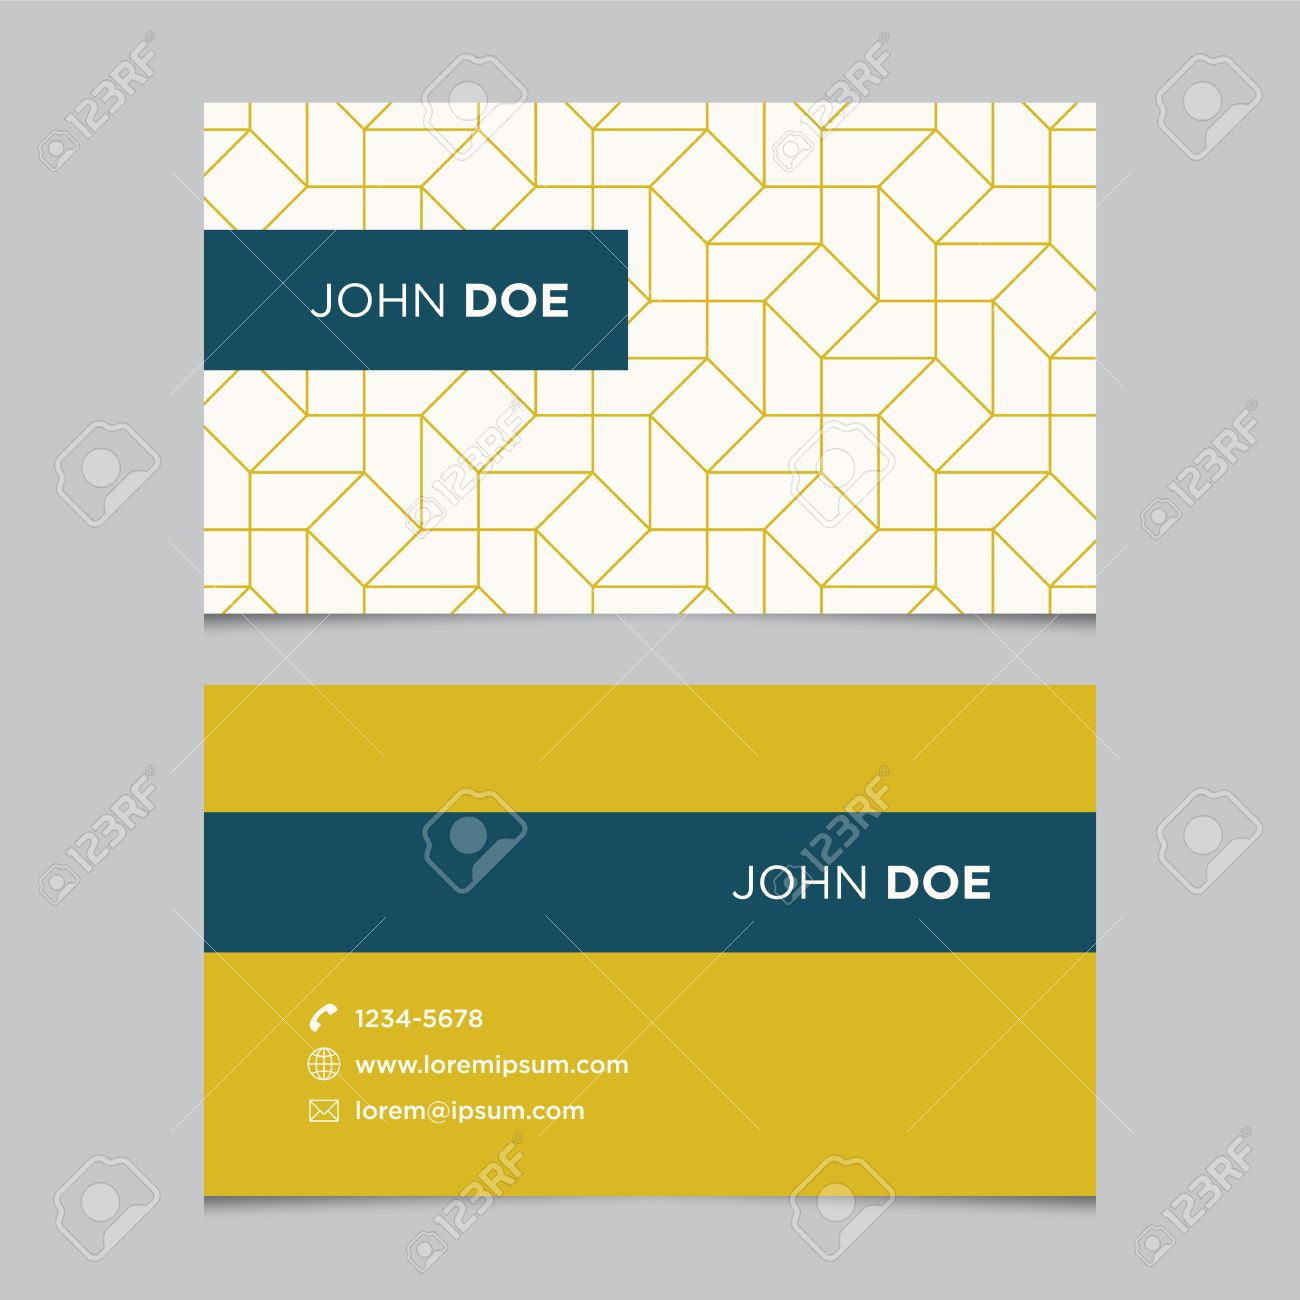 Business card template background pattern vector design editable business card template background pattern vector design editable stock vector 24506402 fbccfo